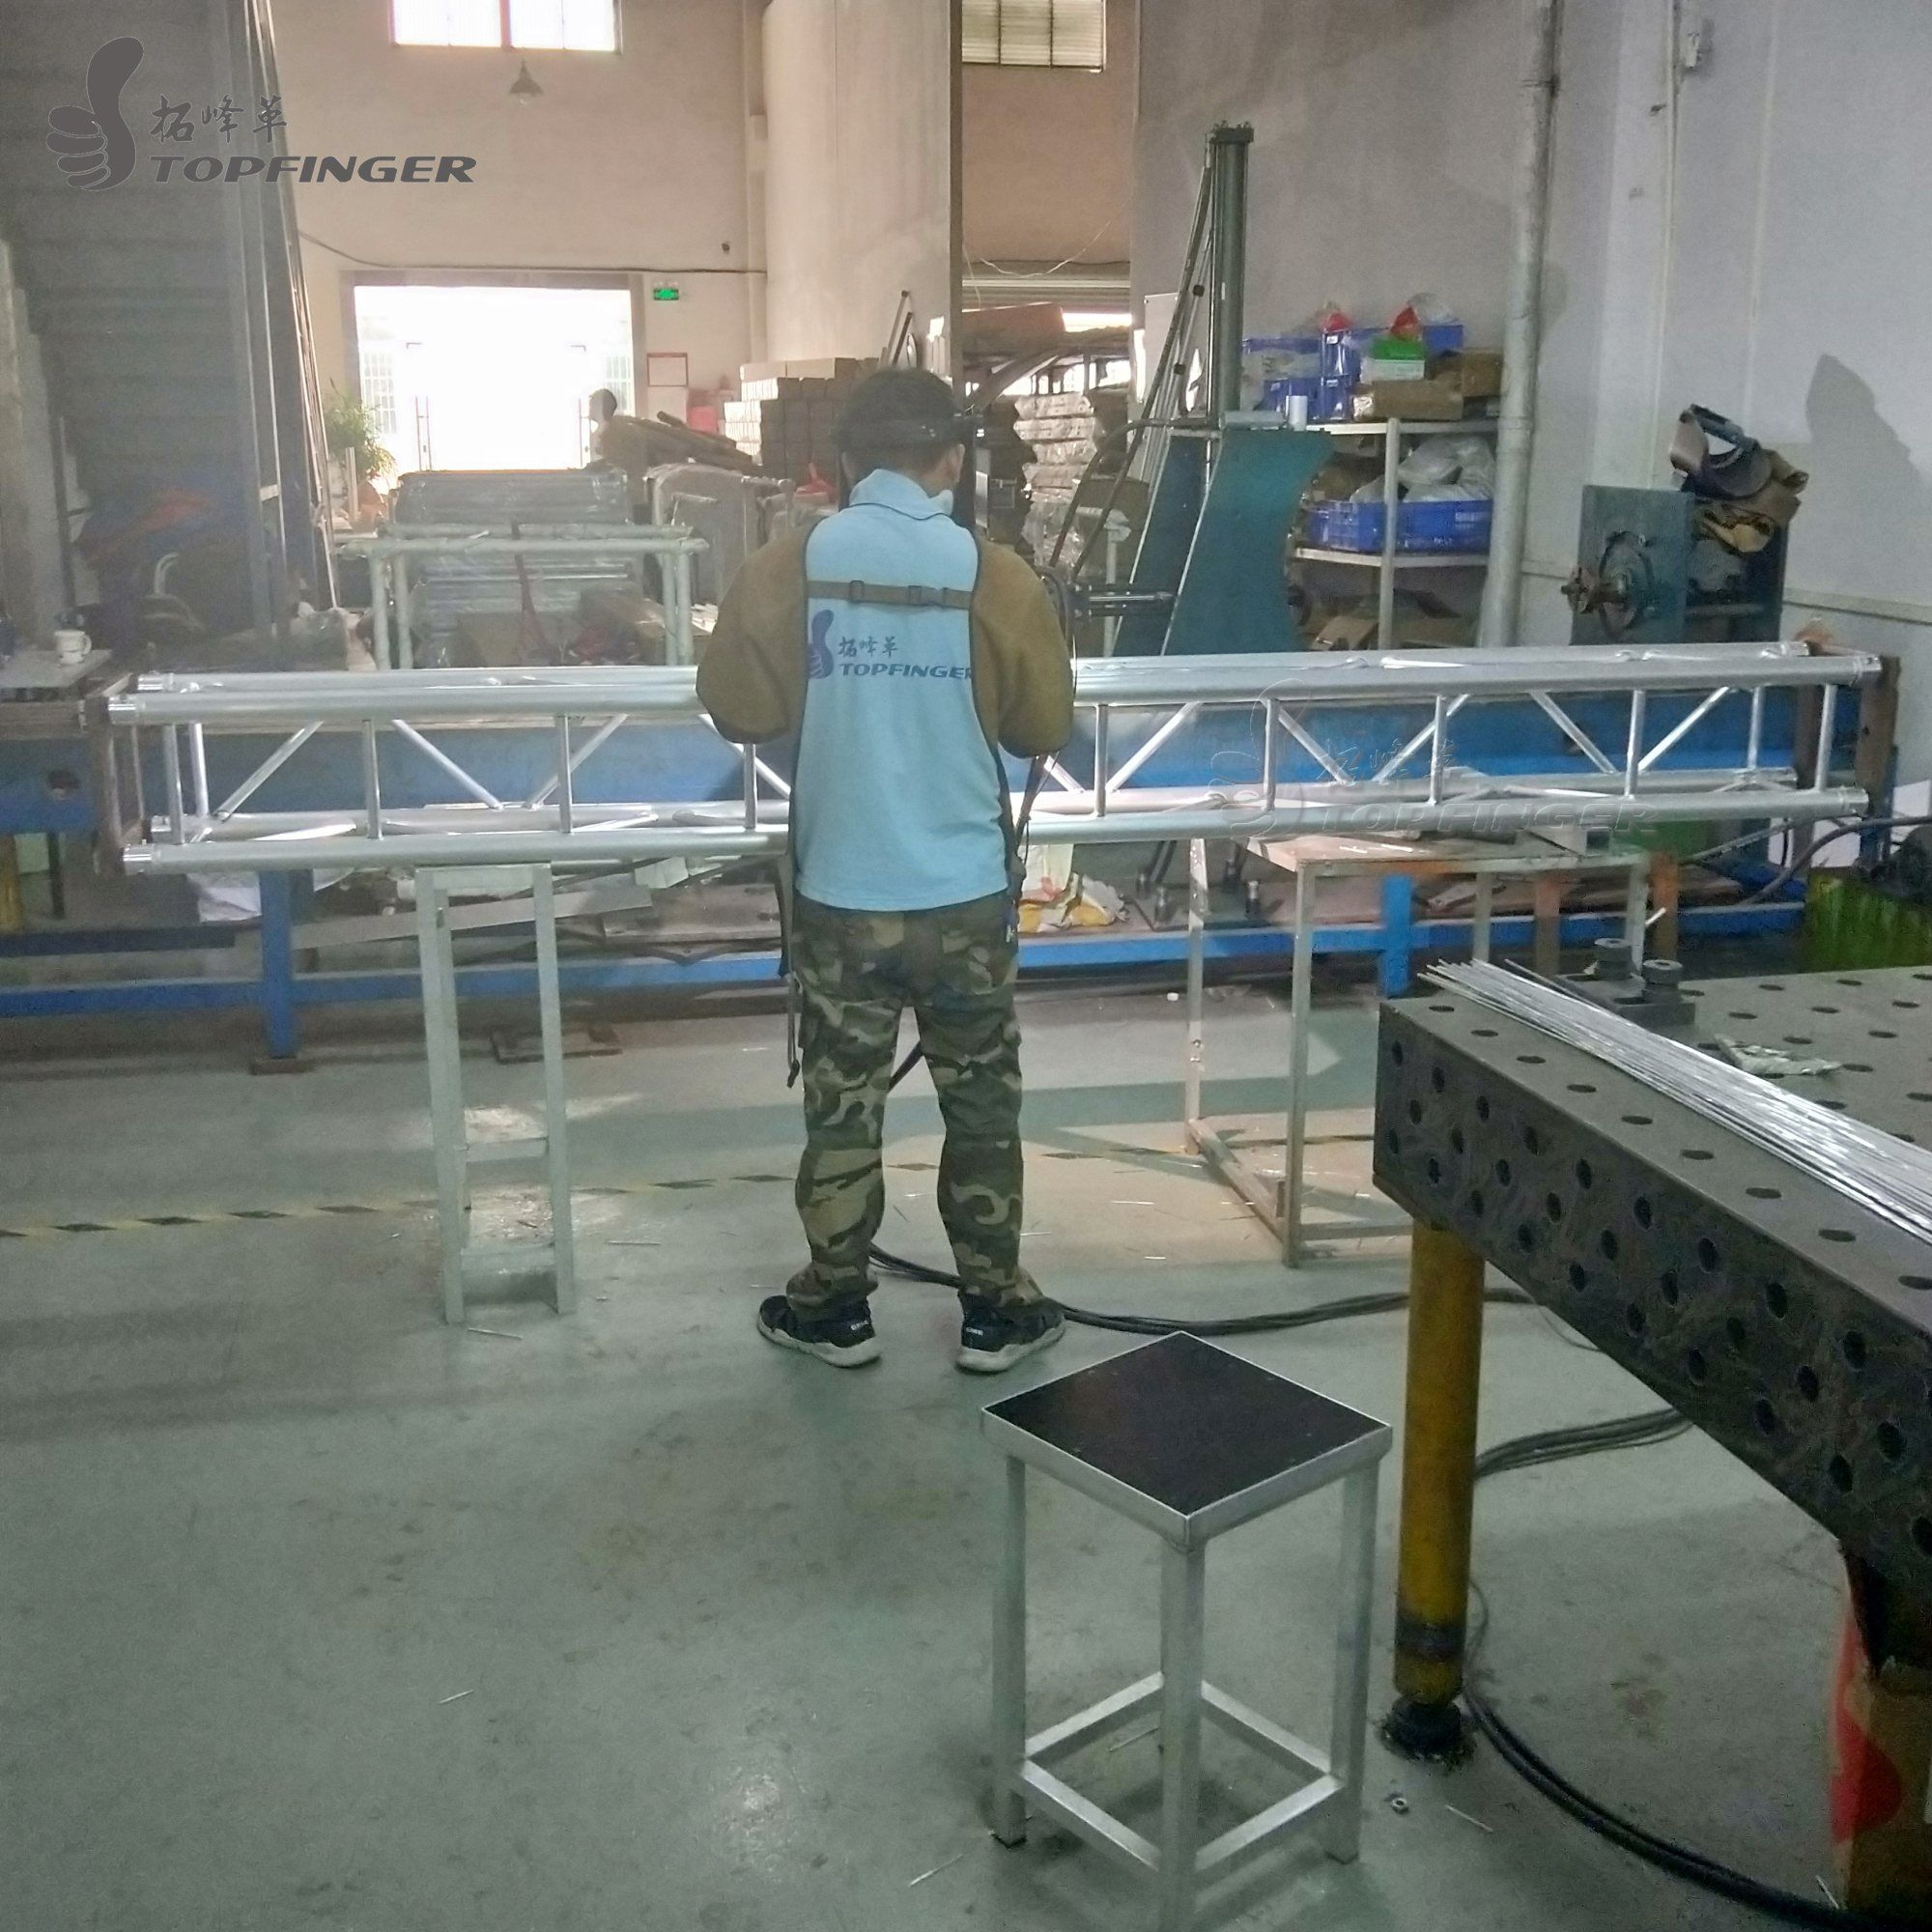 Tfr Factory Truss Welding Design Build Your Own Roof Trusses Roof Trusses Design And Construction 290x290mm Peak Roof Truss Design Welding Design Roof Trusses